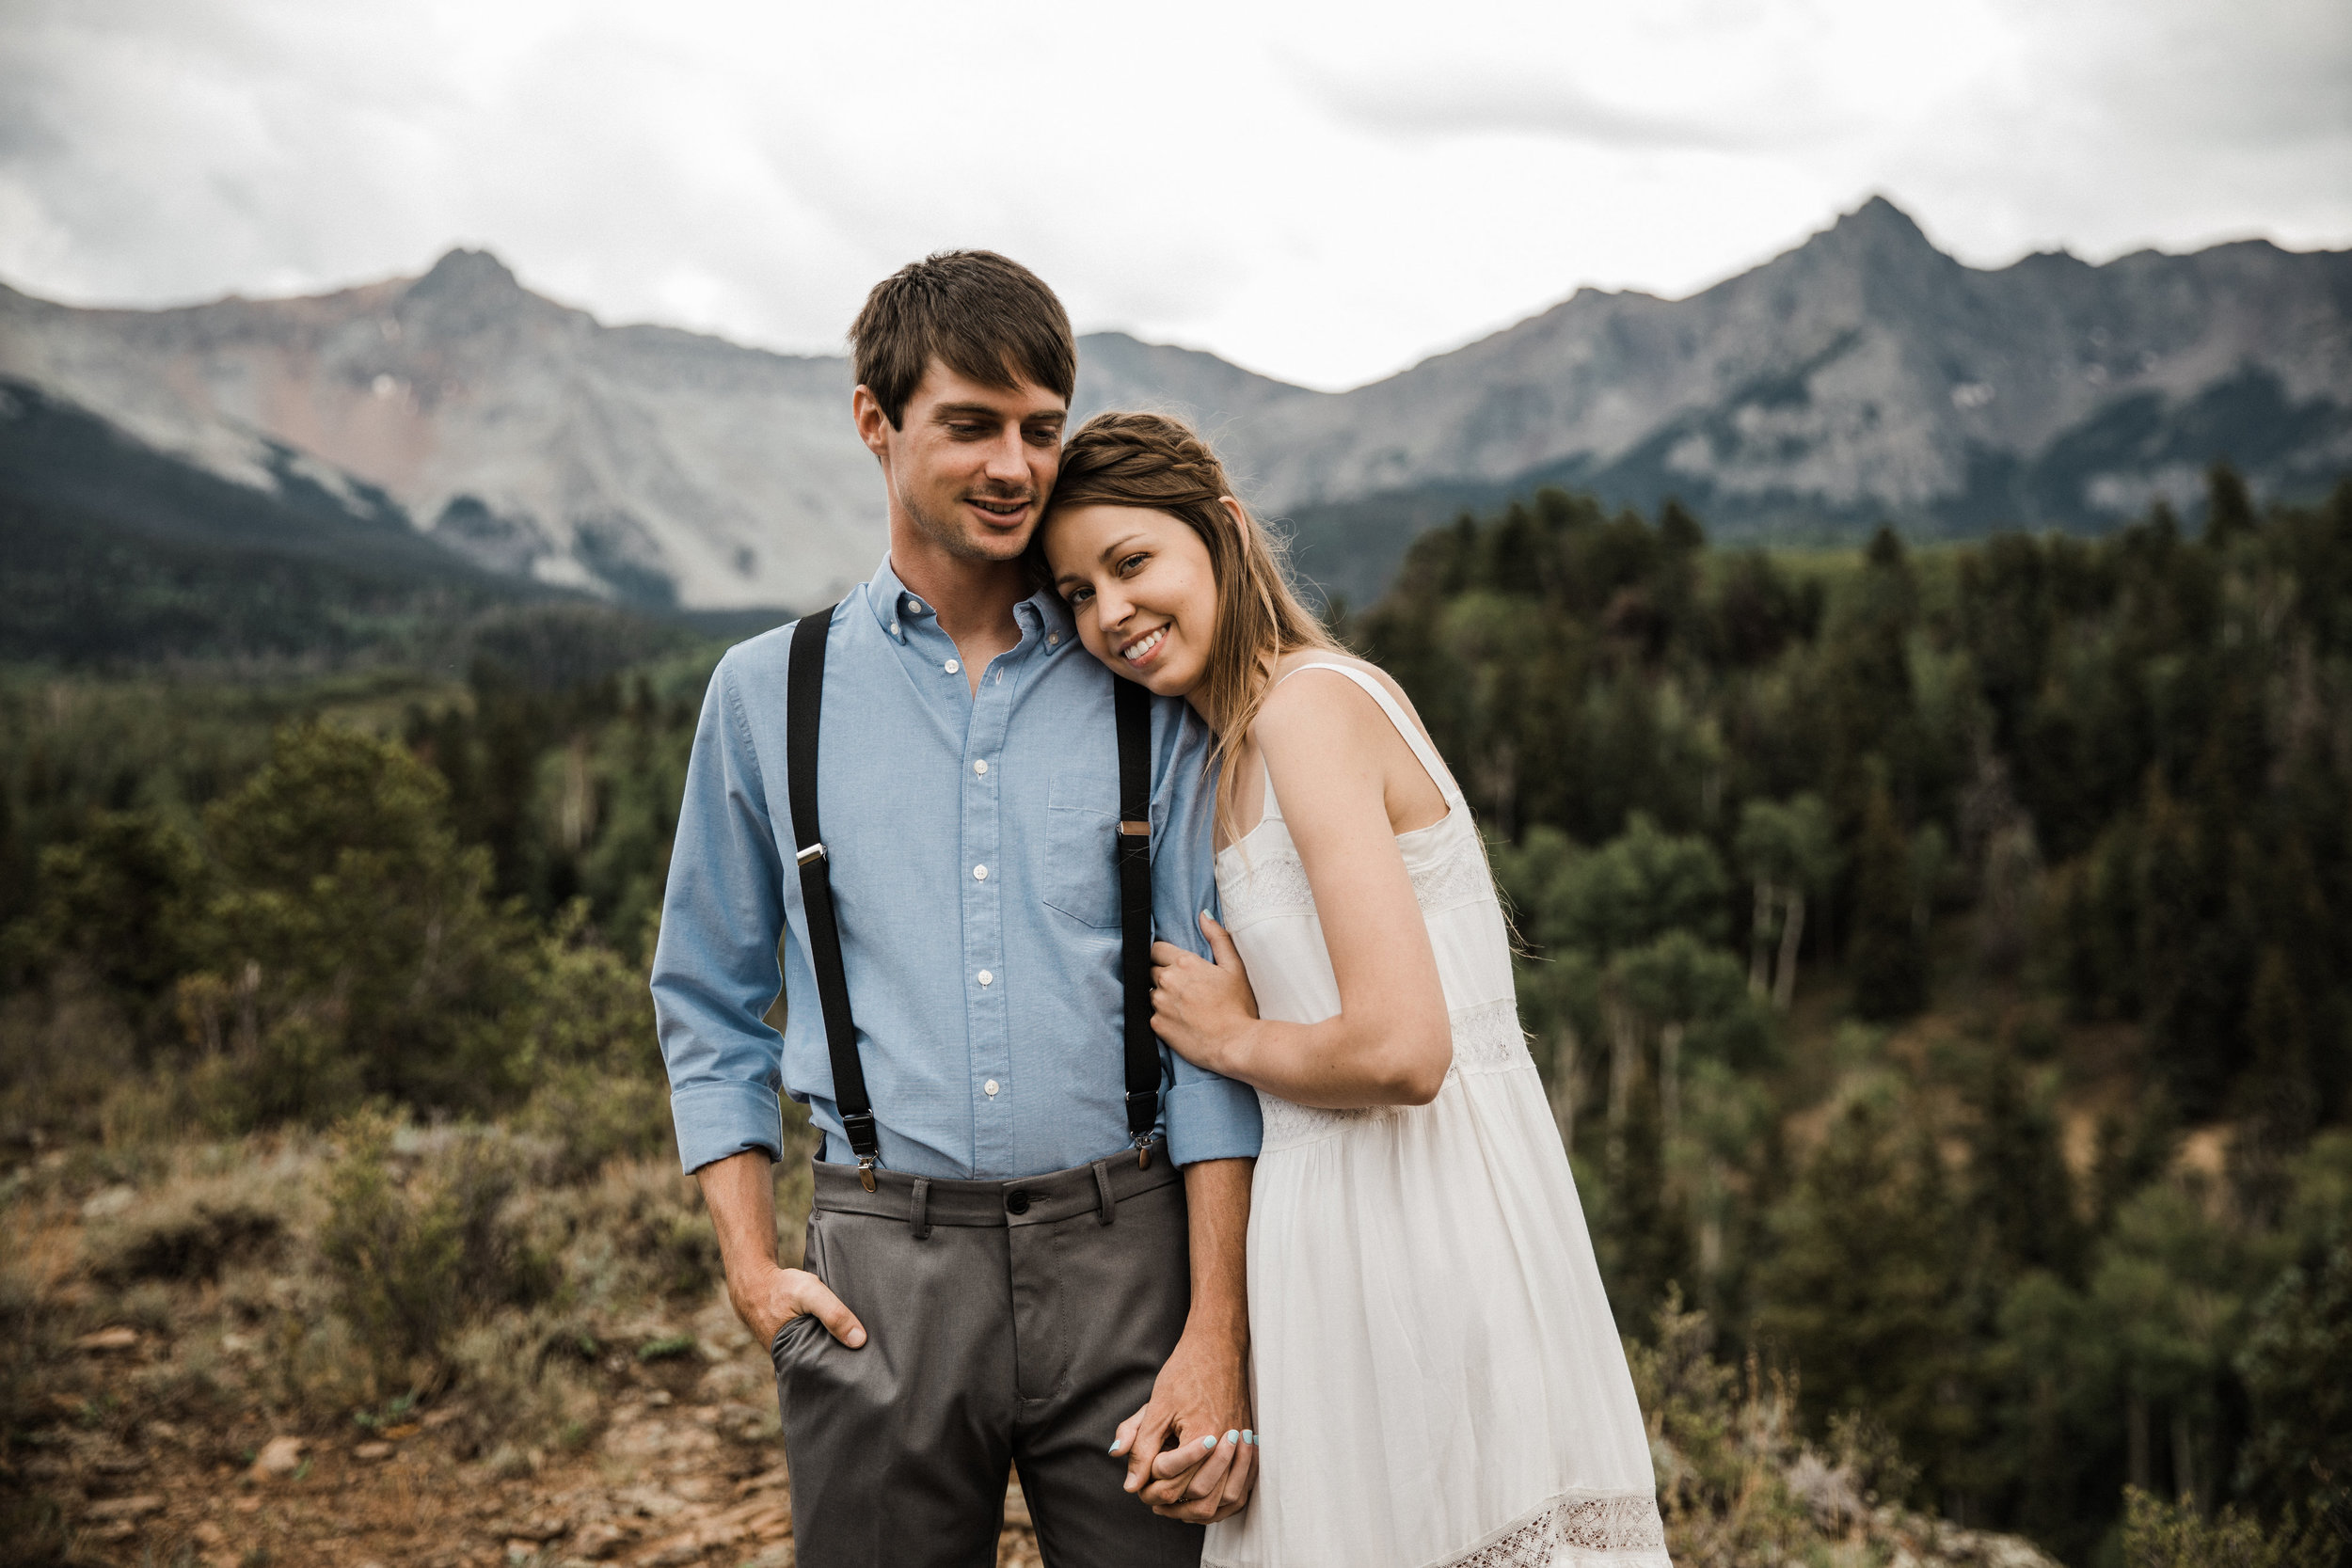 leahandashton-telluride-wedding-photography-KC-0129.jpg